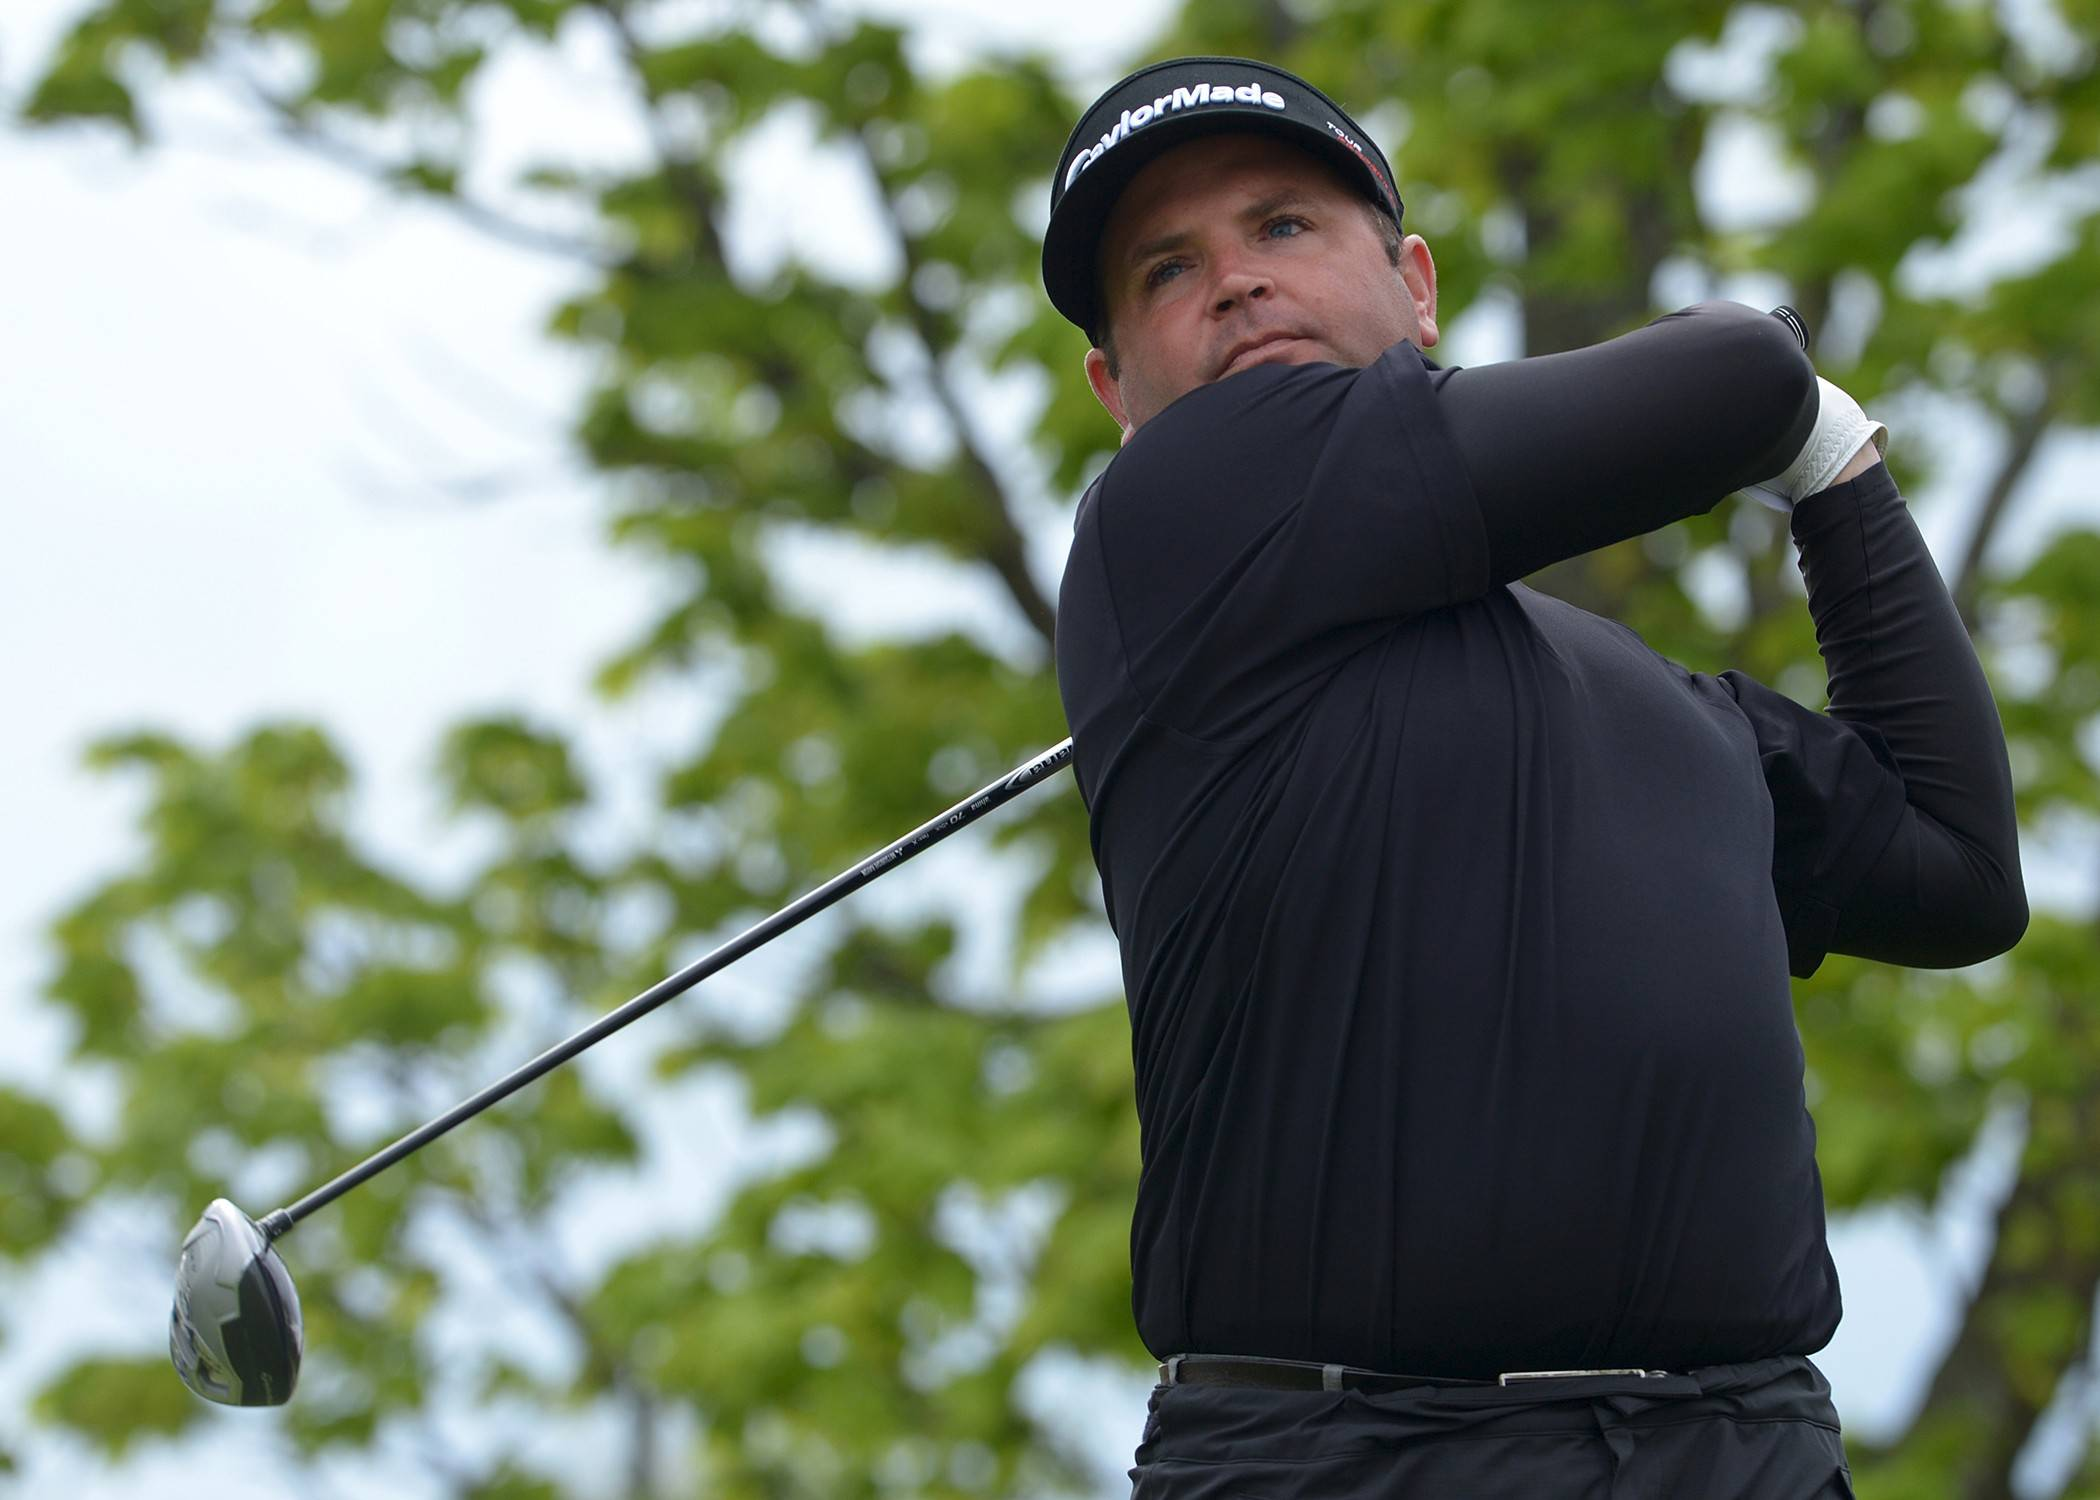 Curtis Malm, 36, Aurora, watches his drive on the first hole in the final match of the 63rd Illinois PGA Match Play Championship. Malm defeated Medinah C.C. teaching professional Travis Johns 1-up at Kemper Lakes Golf Club.